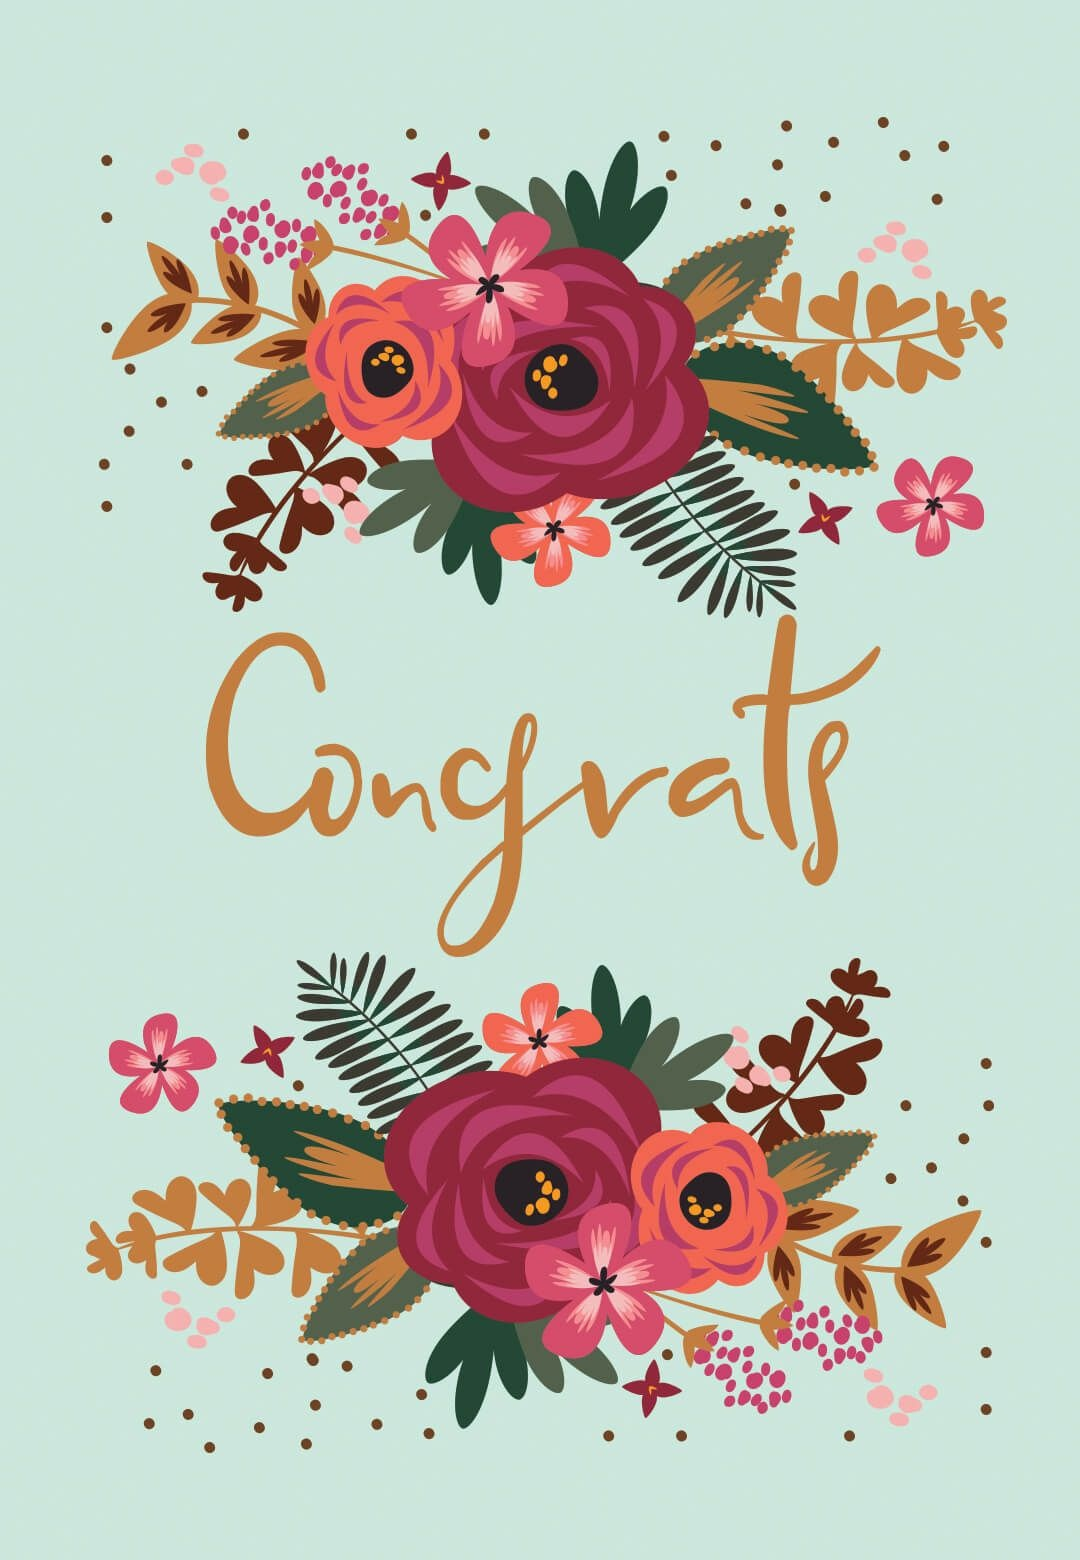 Floral Congrats - Free Printable Wedding Congratulations Card - Free Printable Wedding Congratulations Greeting Cards